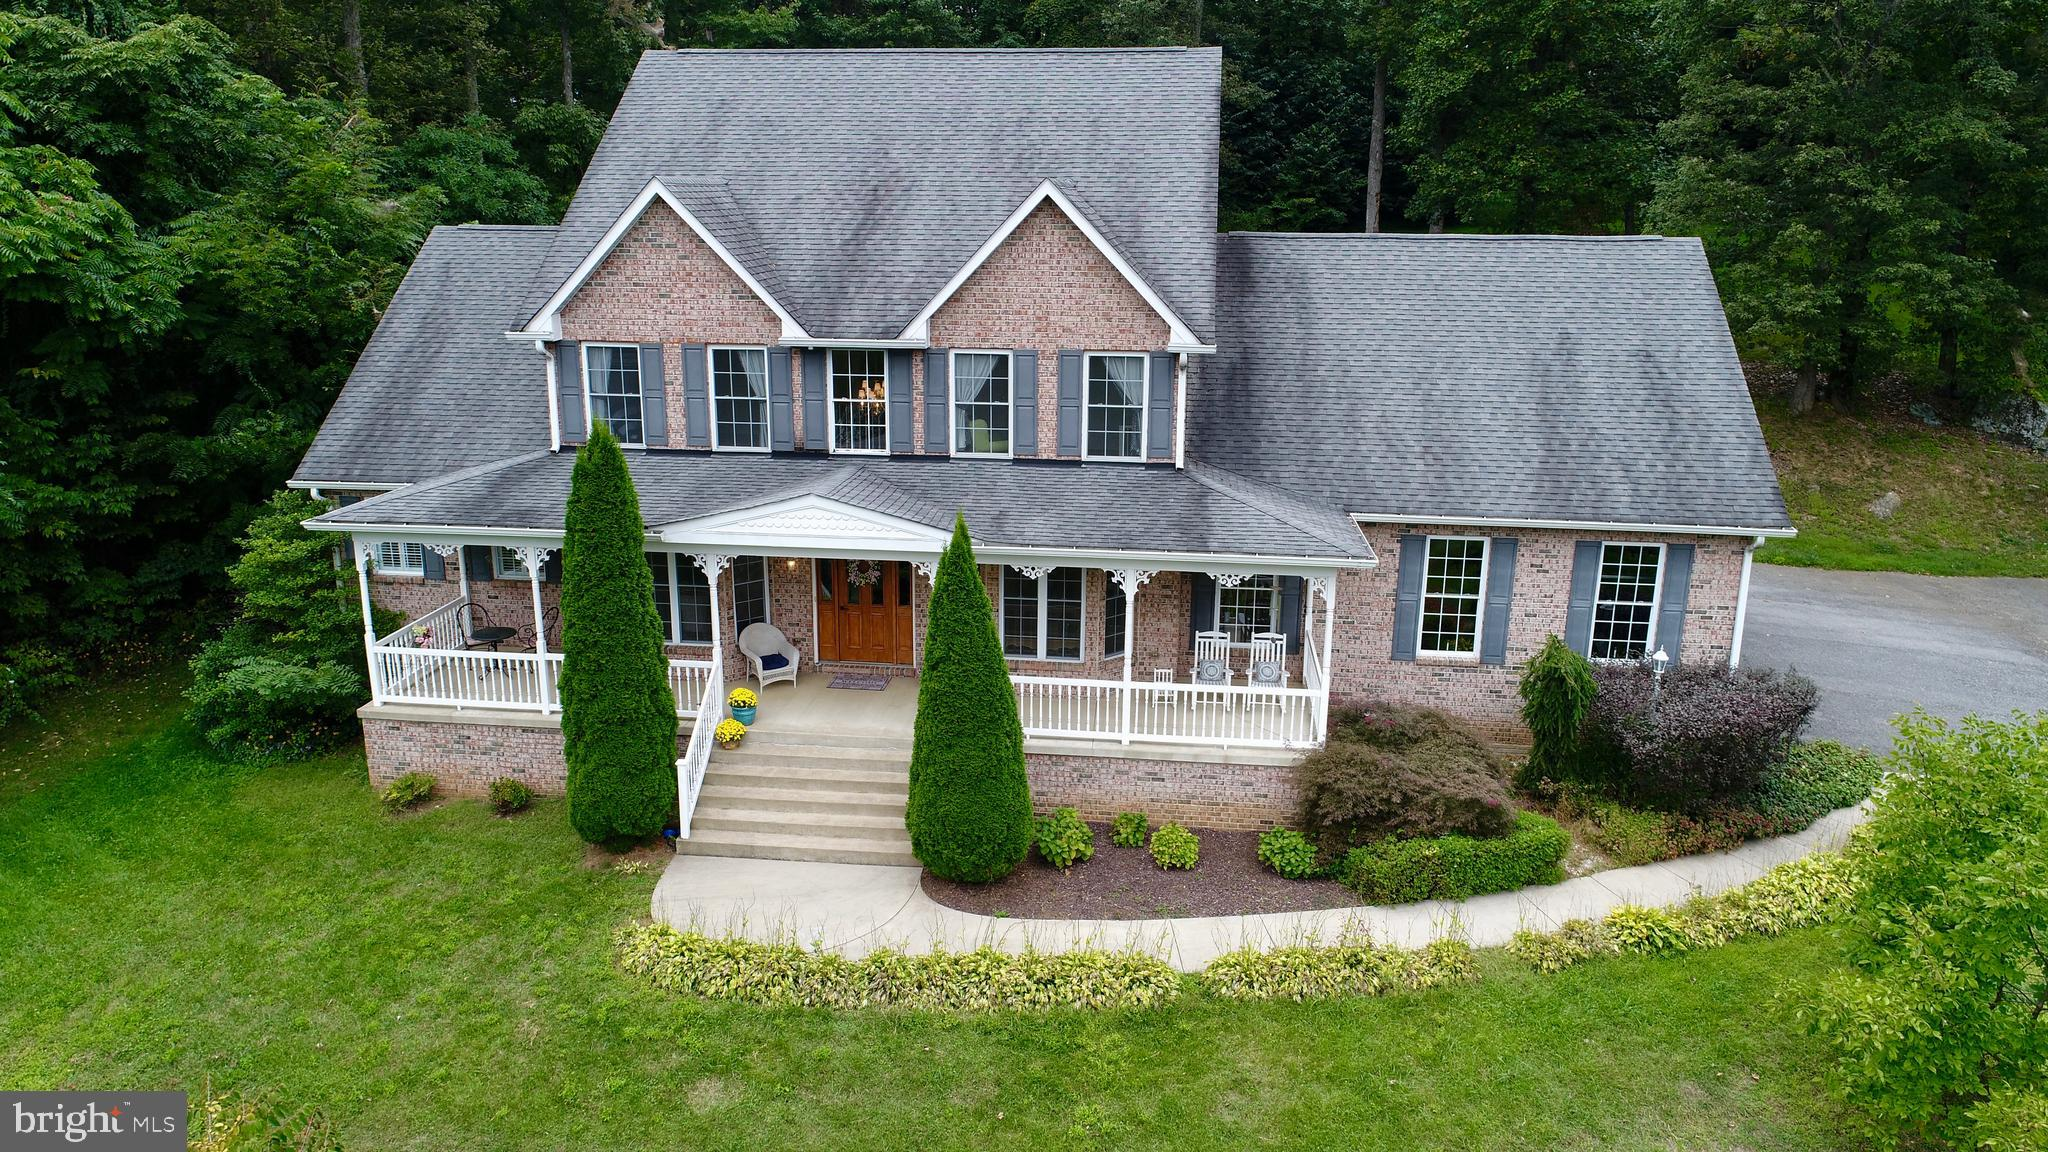 11618 MEETING HOUSE ROAD, MYERSVILLE, MD 21773